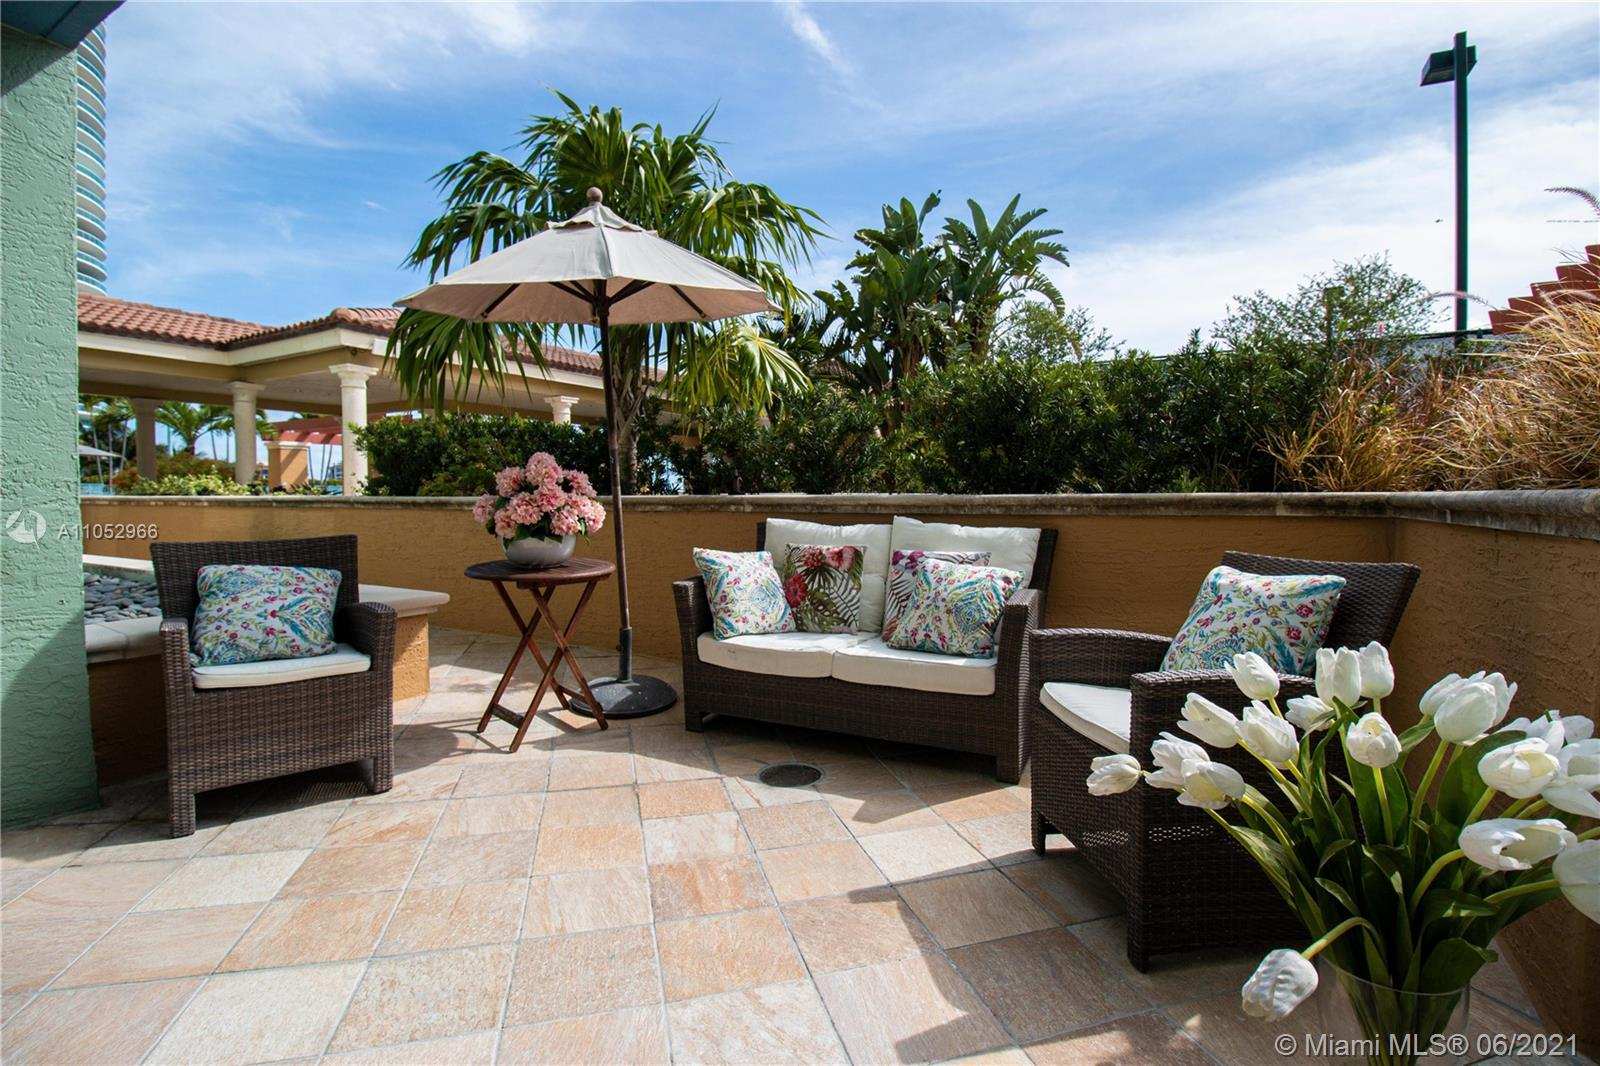 Enjoy the magnificent terrace of this 2bed 1 bath in the Yacht Club at Portofino. Fully renovated unit including stainless steel appliances, ceramic flooring. Turn key unit on the pool level. Lanai unit. Great for families with kids who want to enjoy the pool. Very easy to show.